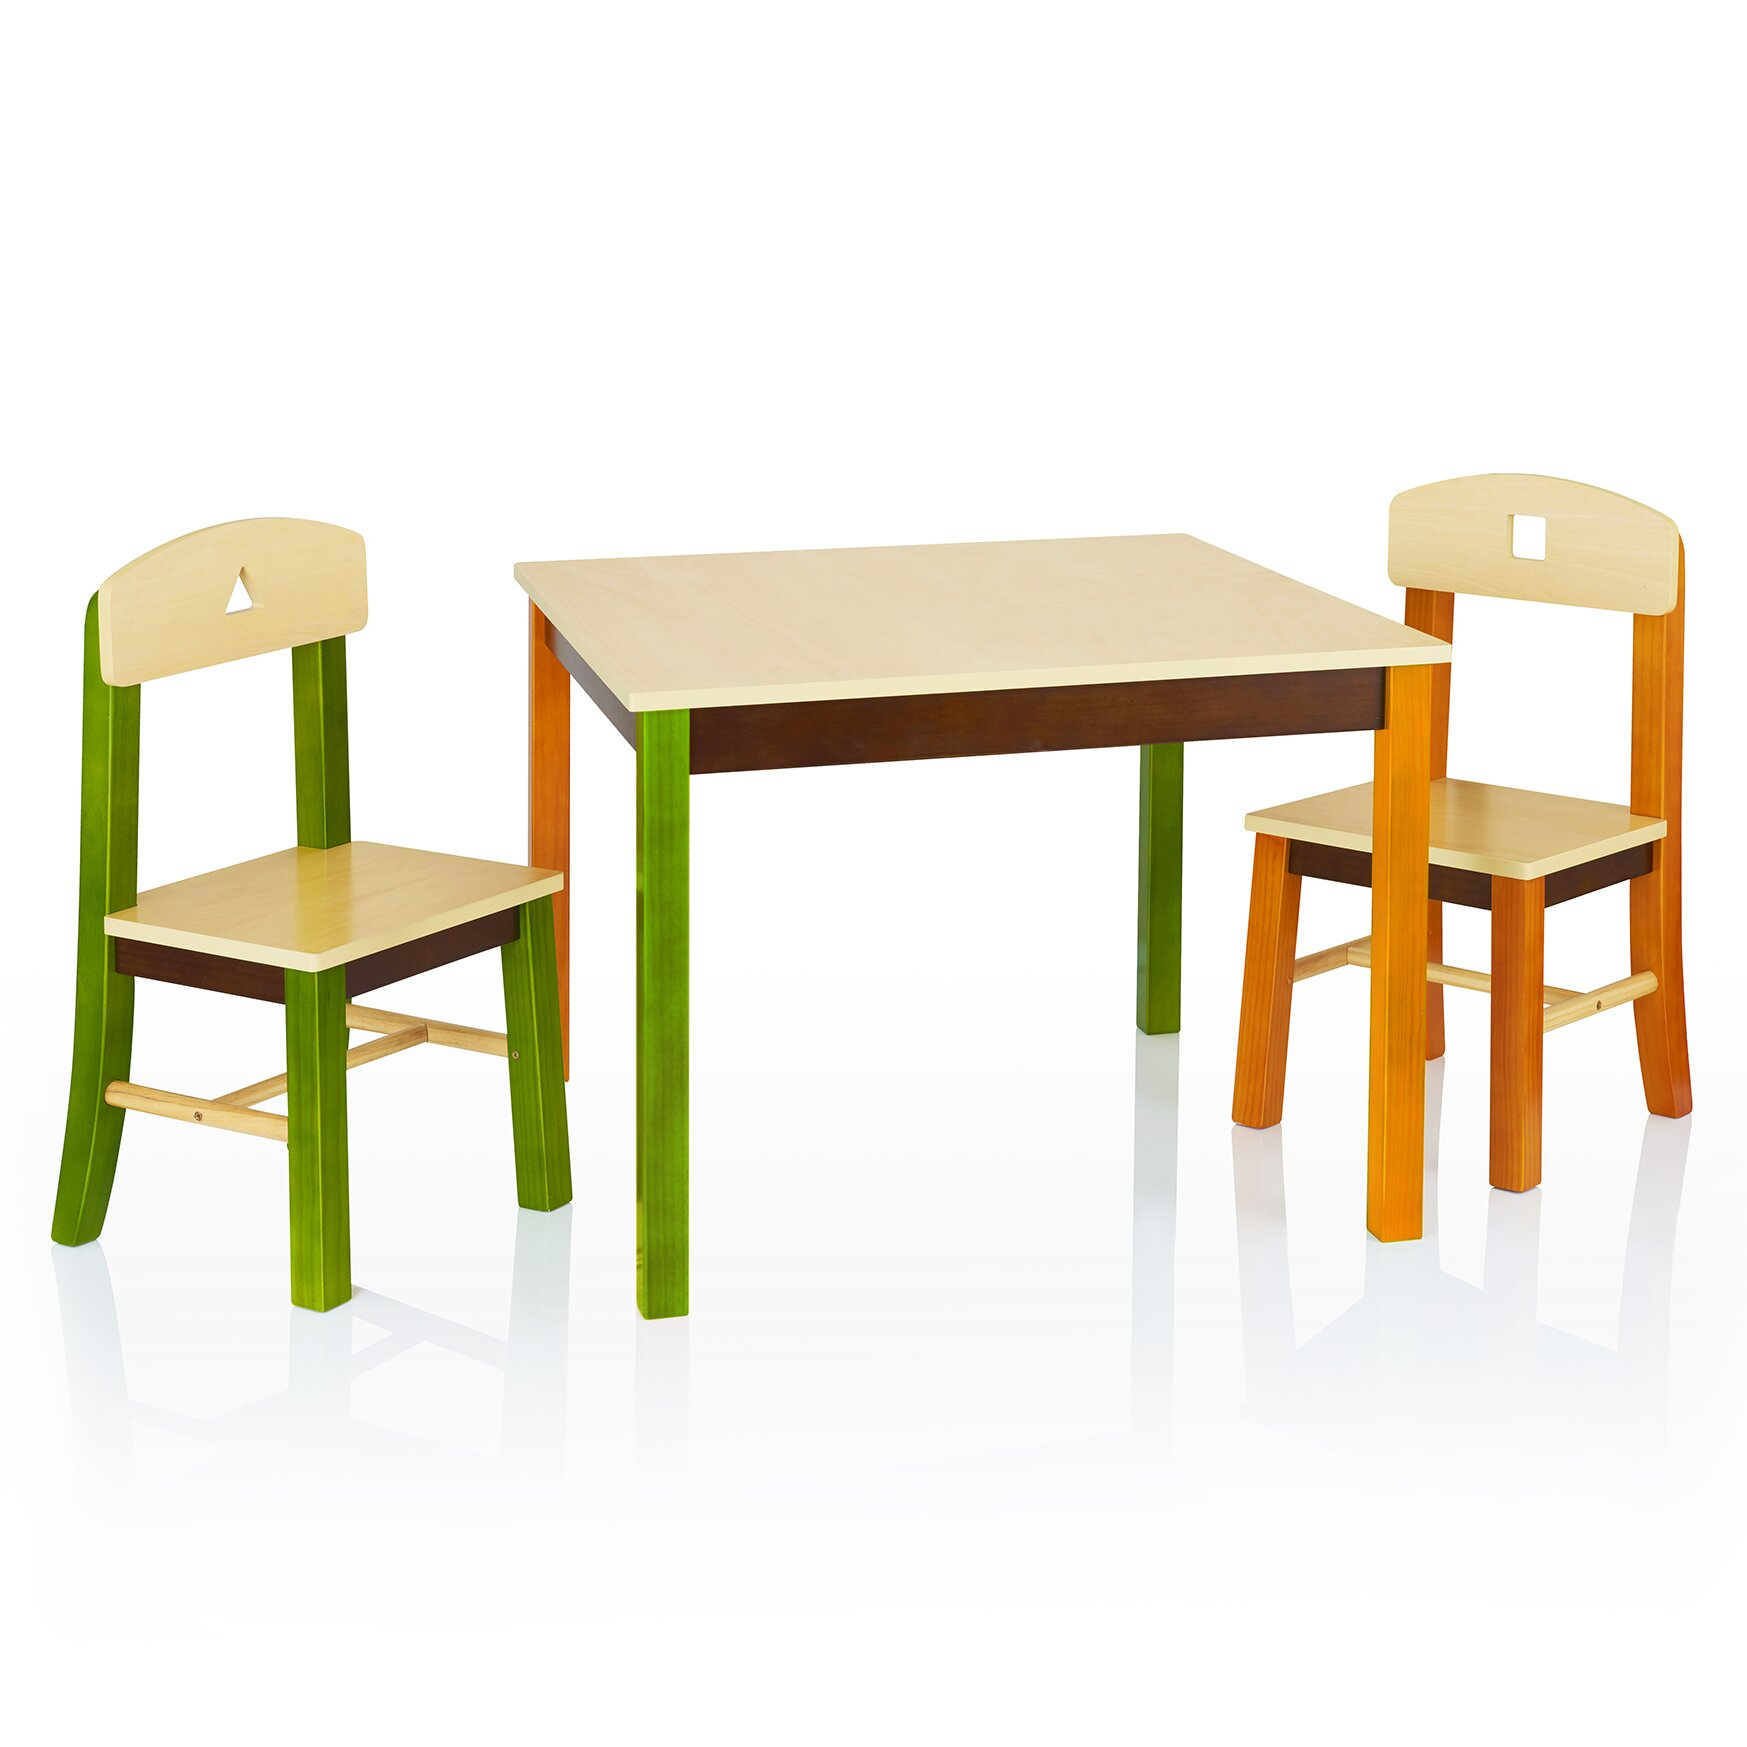 Guidecraft see and store kids 3 piece rectangle table and for Table and chairs furniture